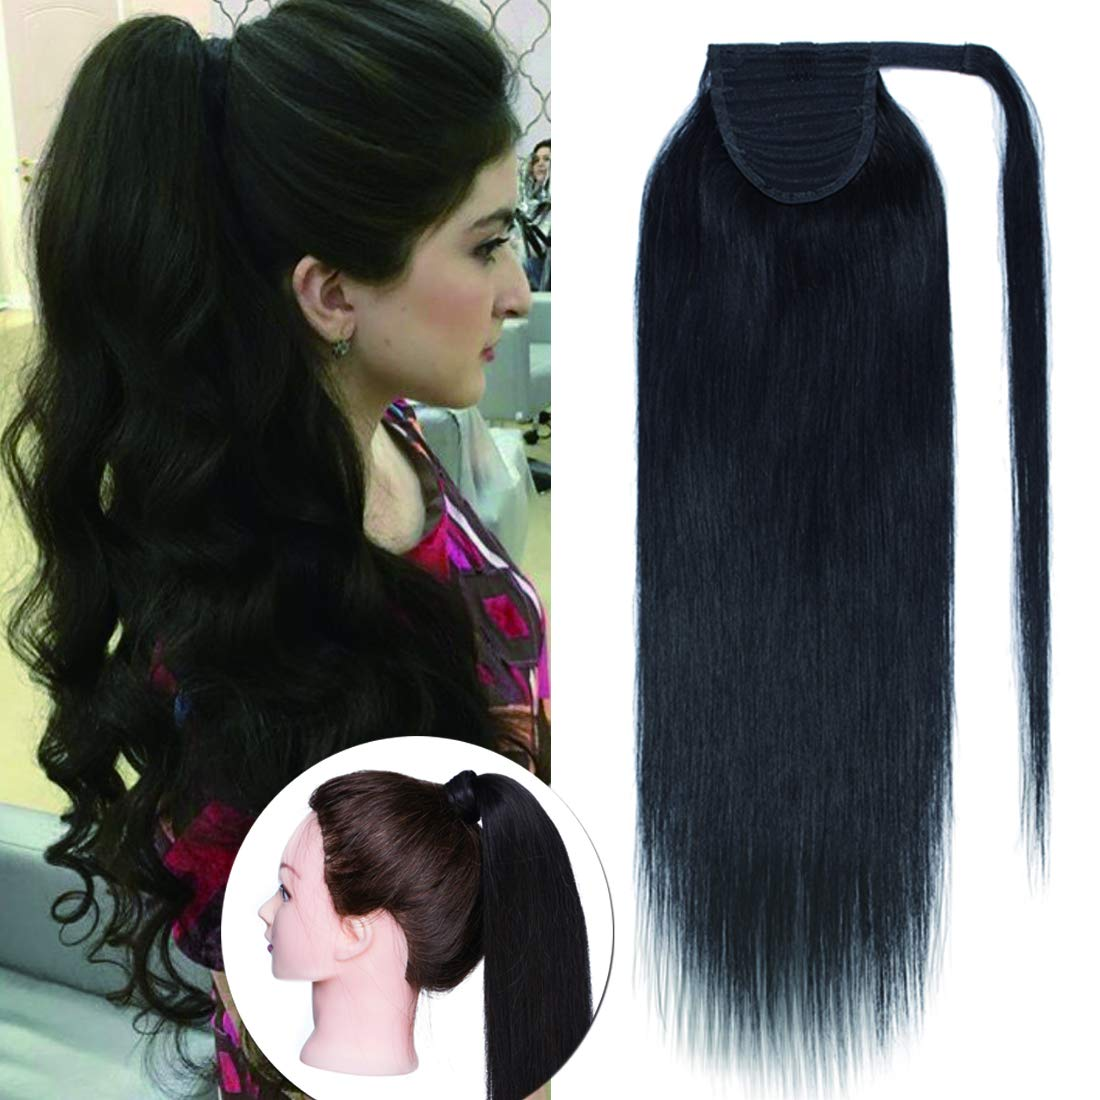 100% Remy Human Hair Wrap Around Ponytail Hair Extension Straight One Piece Wrap Pony Tail Hairpiece for Woman #1B Natural Black 16 inches 80g